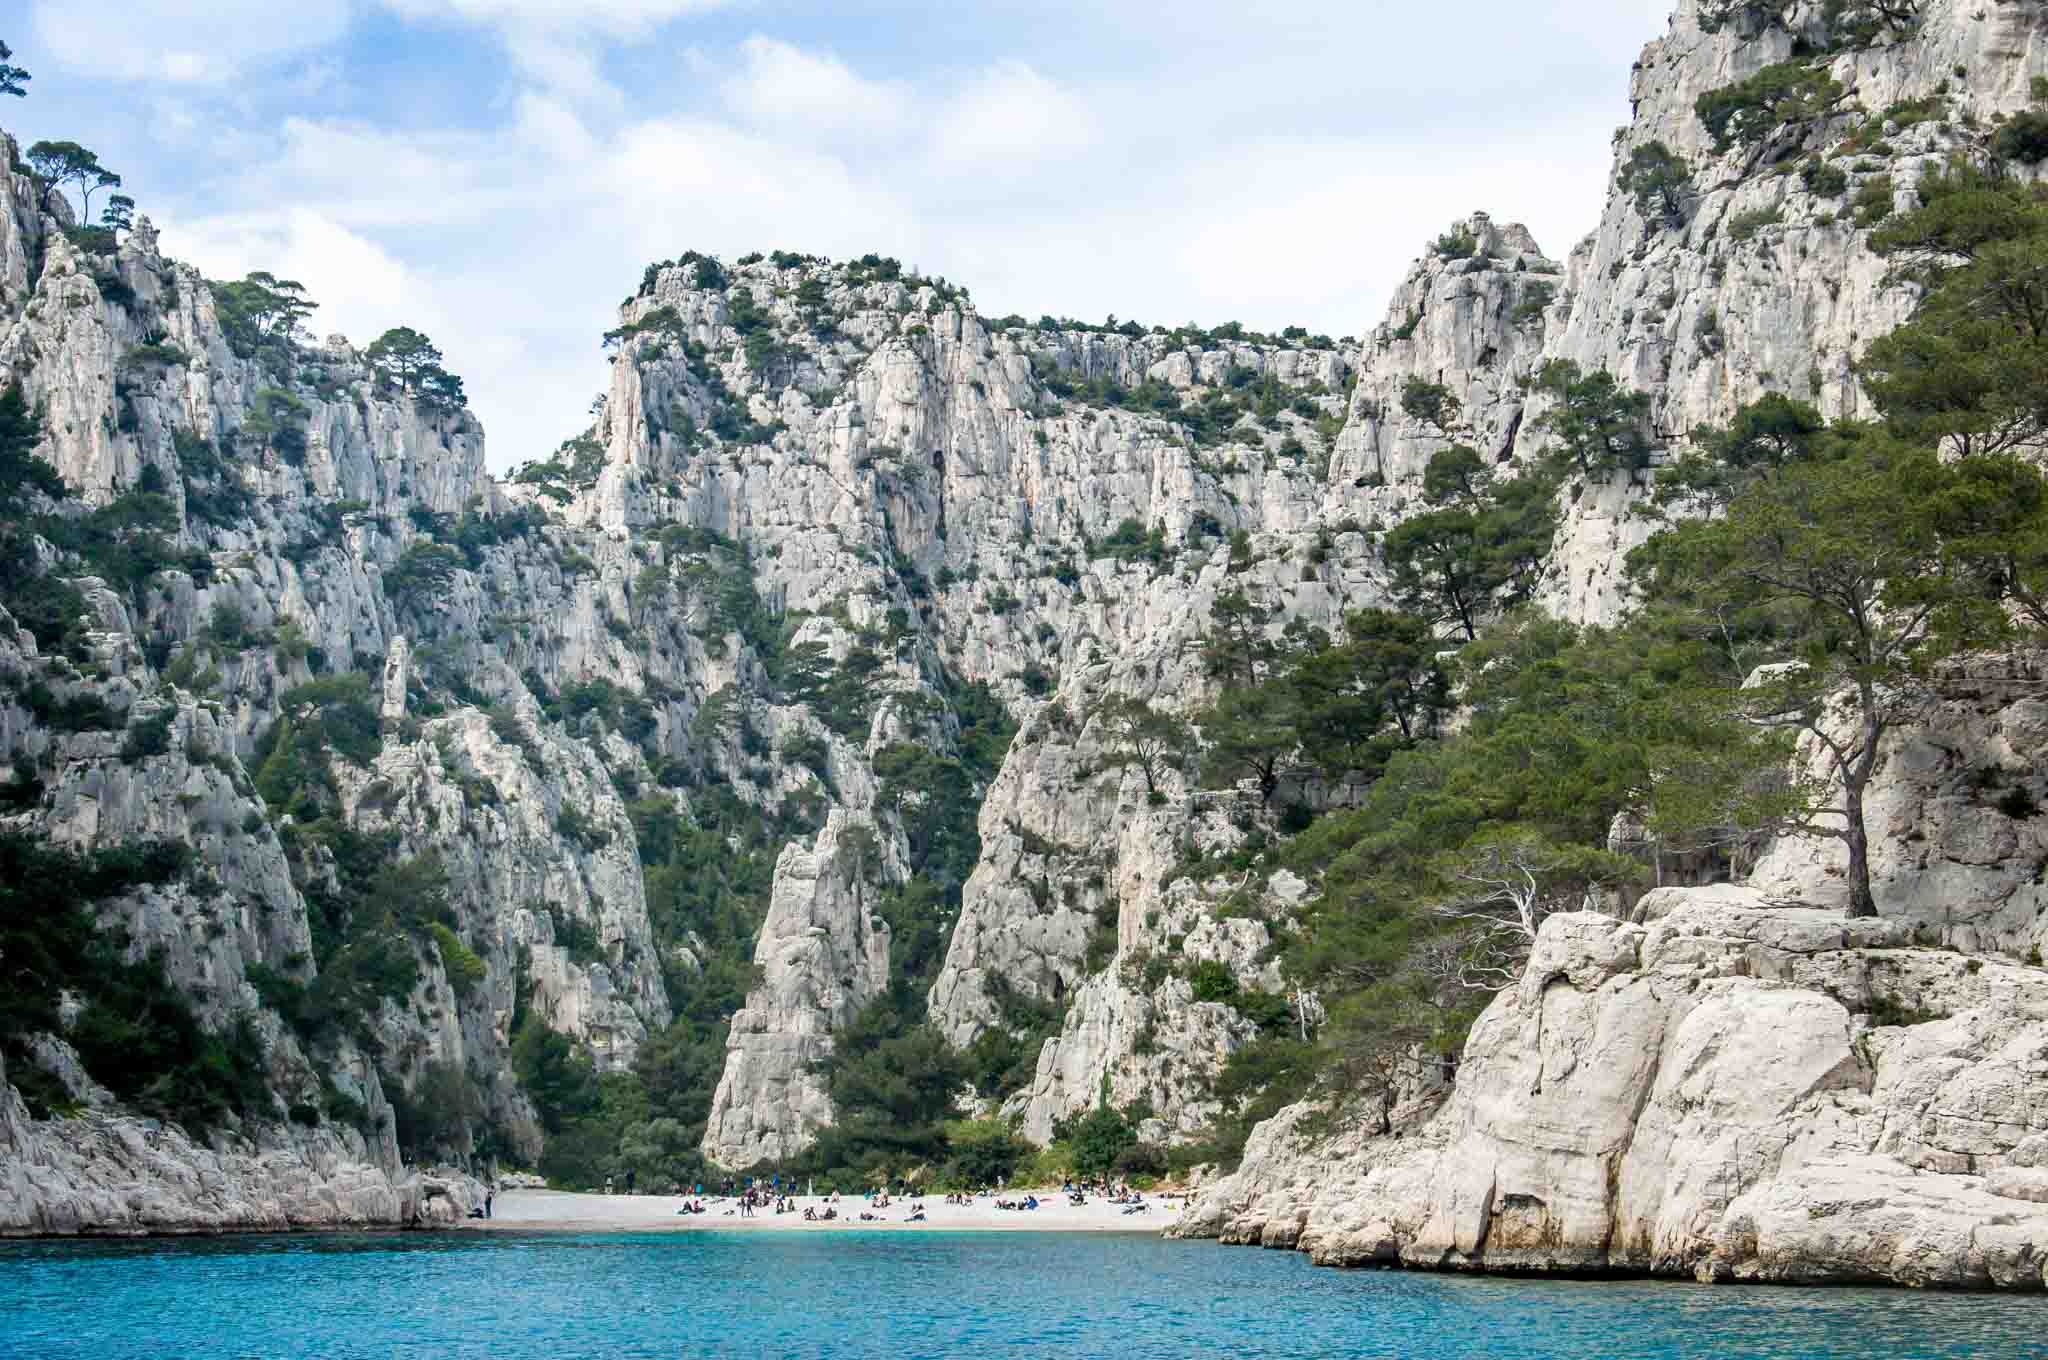 Visiting the calanques at Cassis is one of the best things to do in Provence.